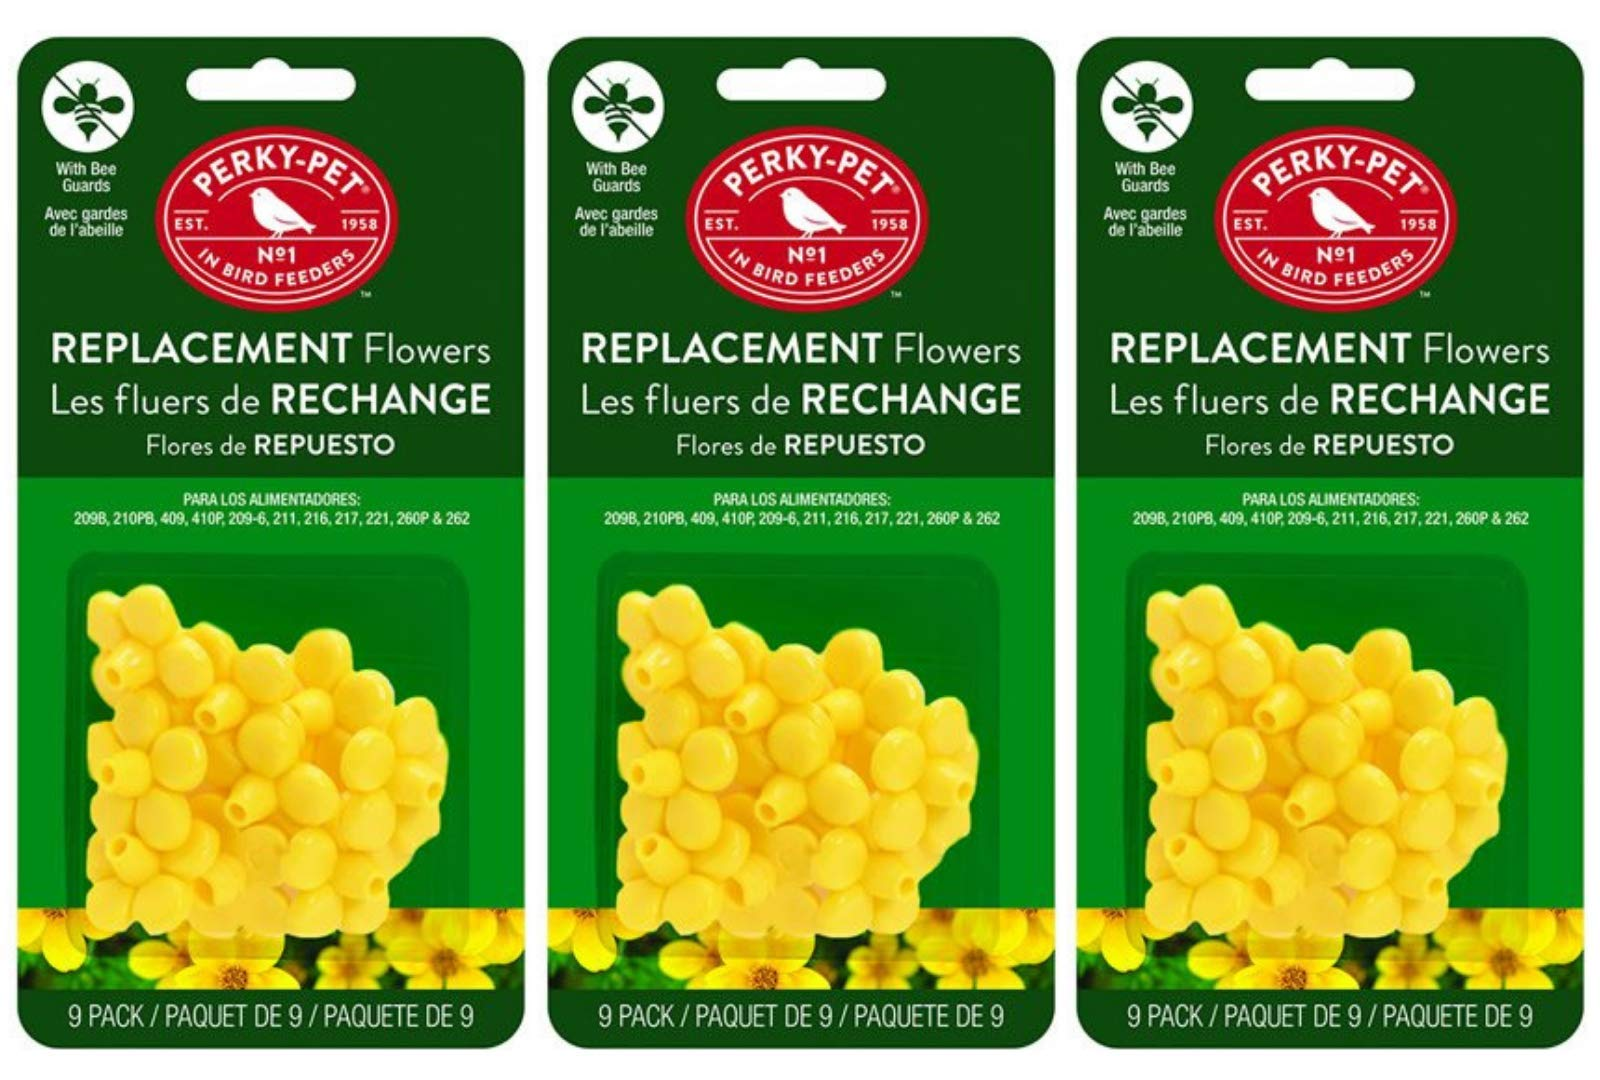 Perky-Pet 202FB 9 Piece Yellow Hummingbird Feeder Replacement Flowers (Pack of 3) by Perky-Pet